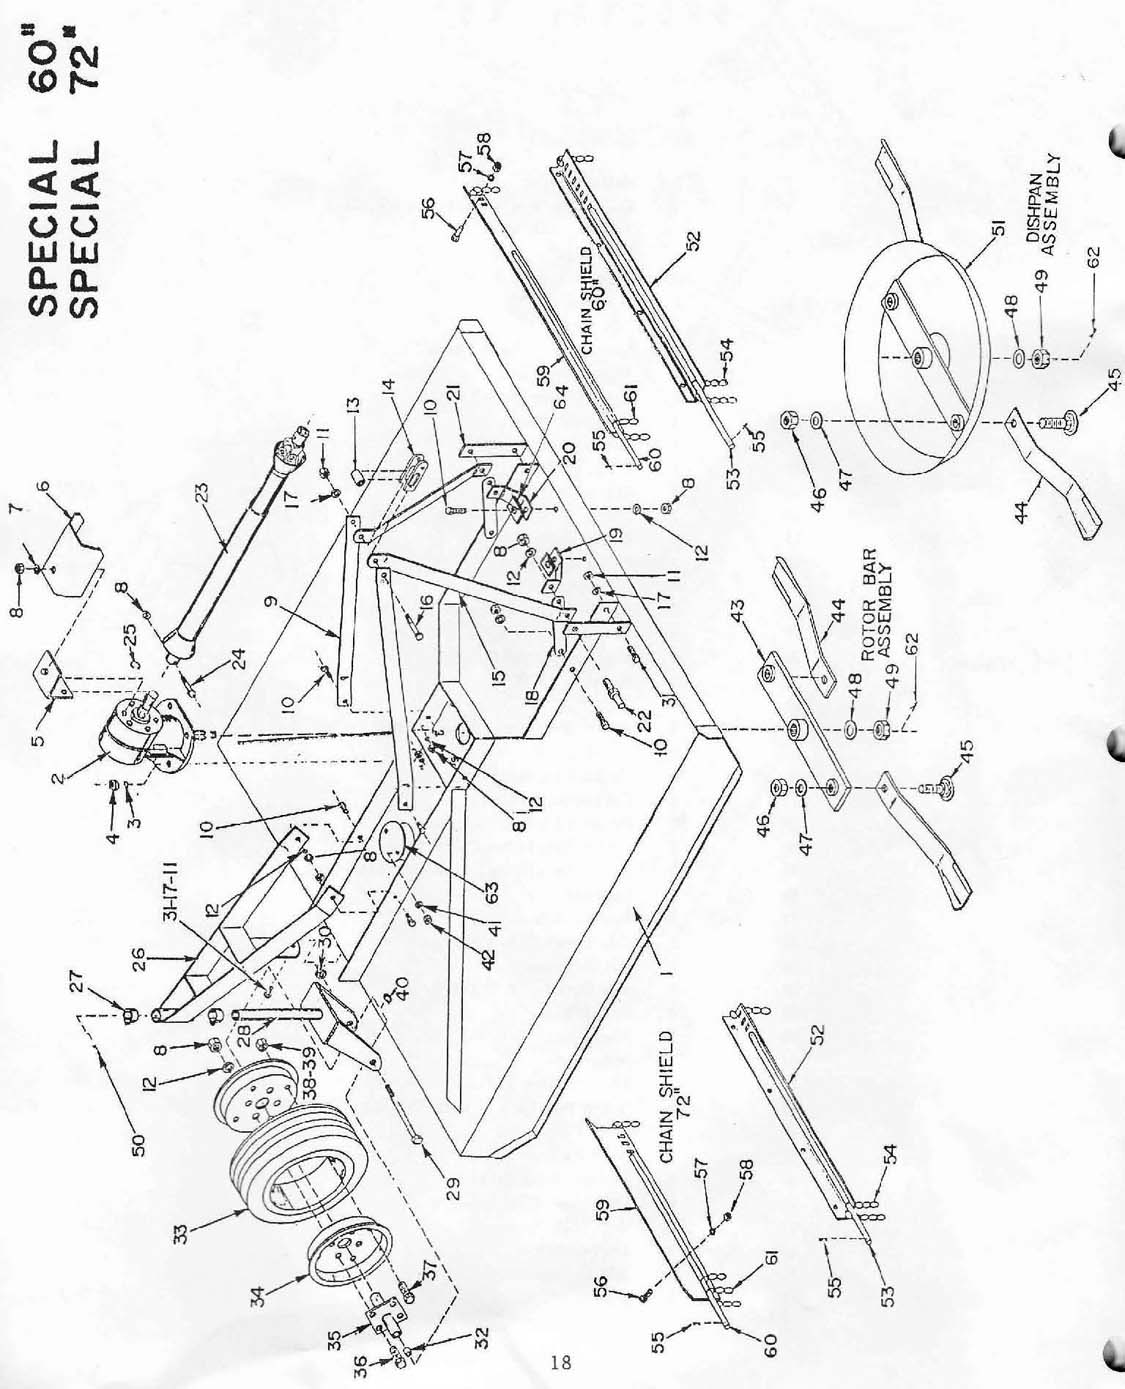 rotary phone parts diagram mercruiser wiring 5 0 manuals forum expanded thread page